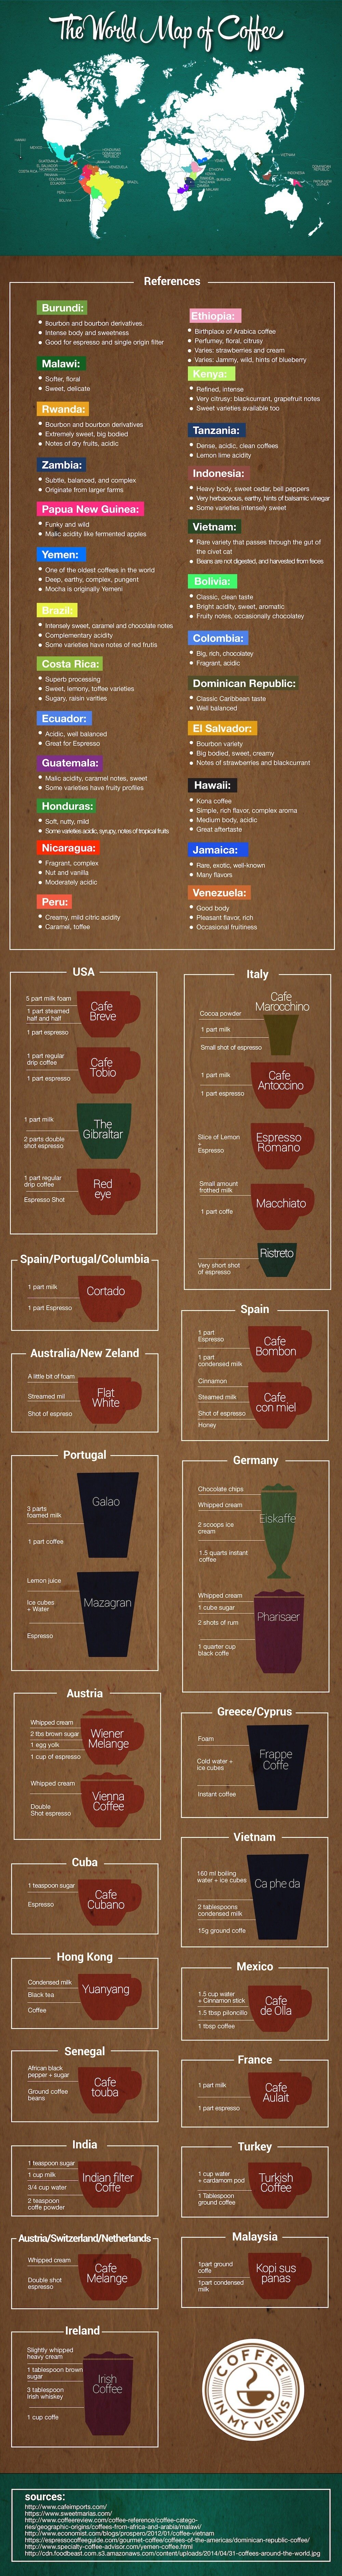 how much do you love coffee infographic of different coffees from around the world